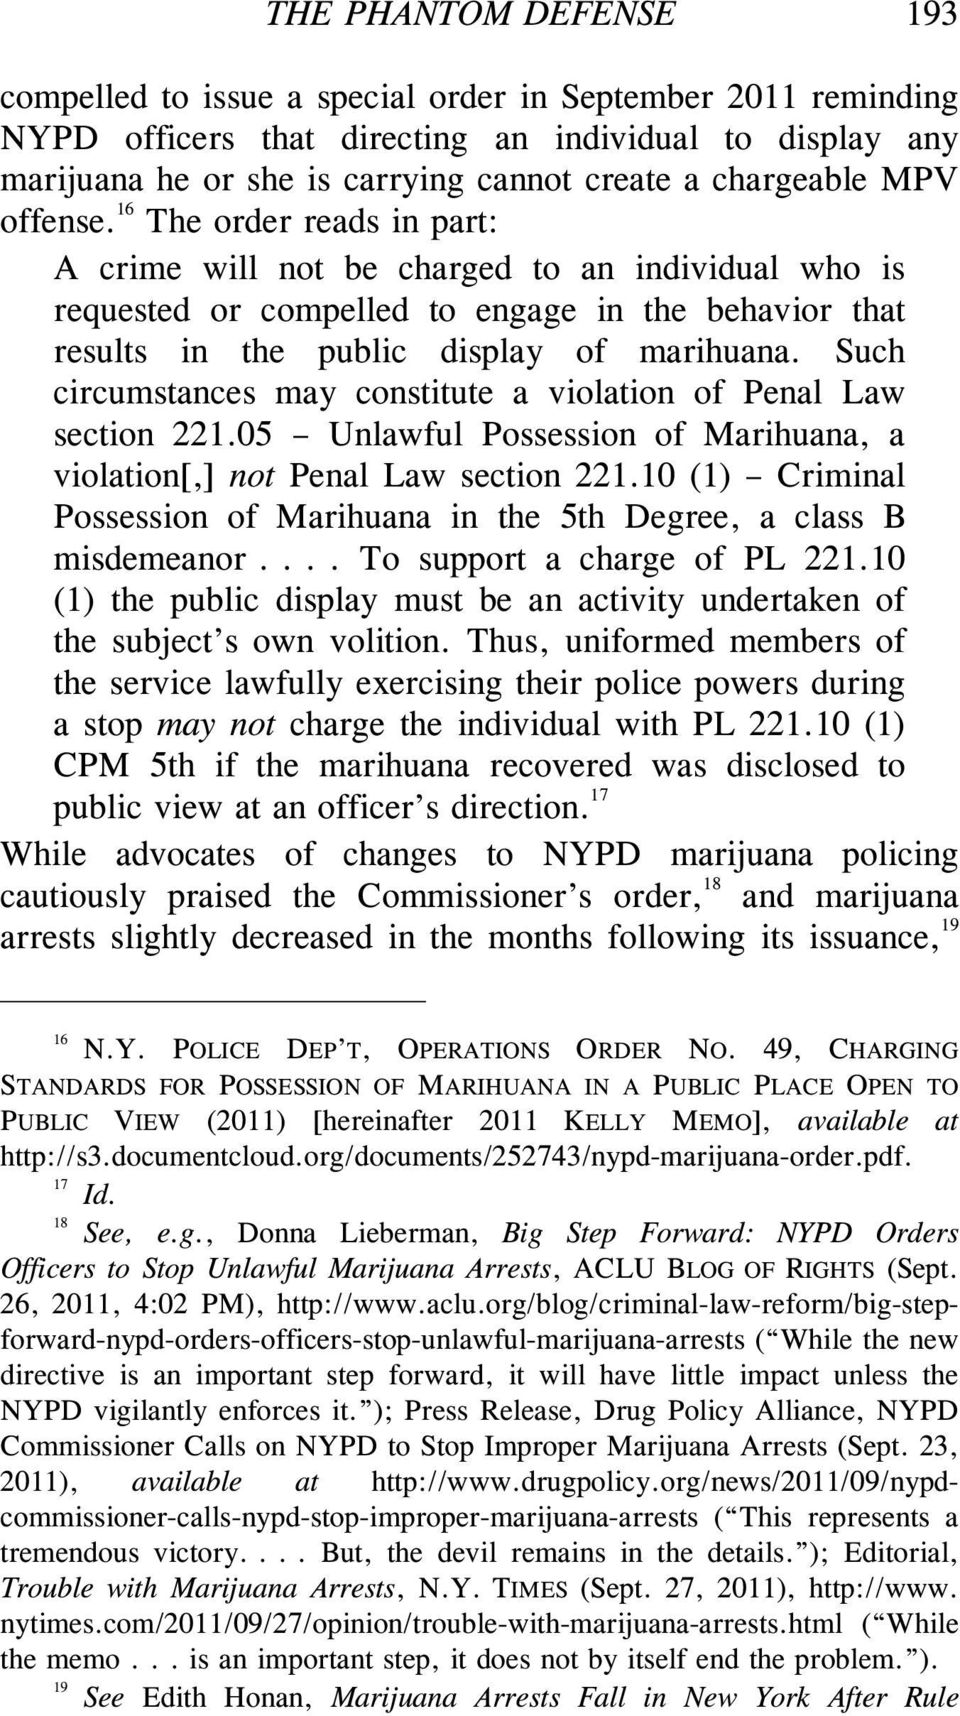 16 The order reads in part: A crime will not be charged to an individual who is requested or compelled to engage in the behavior that results in the public display of marihuana.